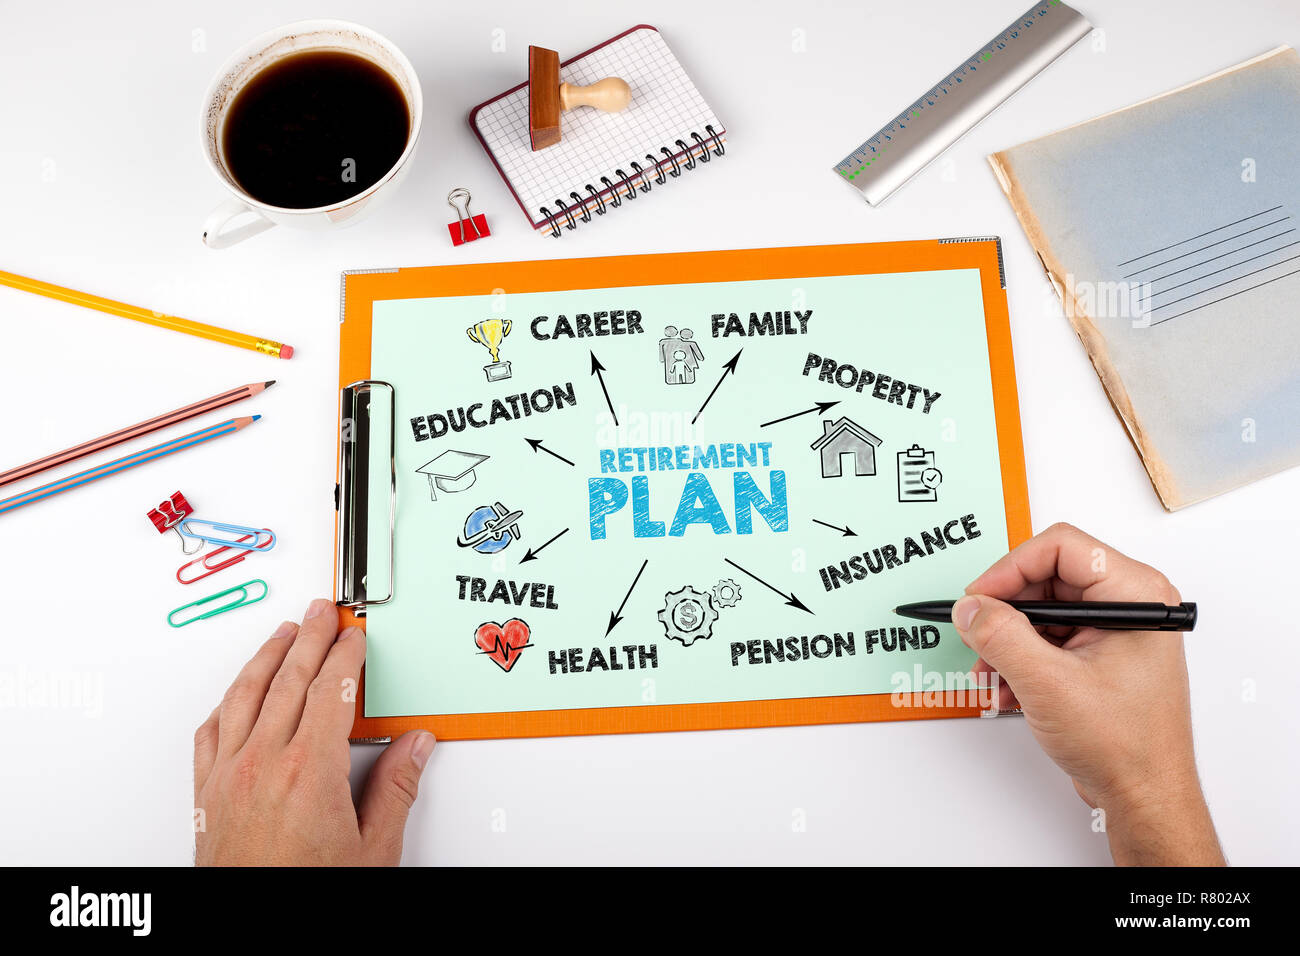 Retirement Plan concept. Chart with keywords and icons - Stock Image